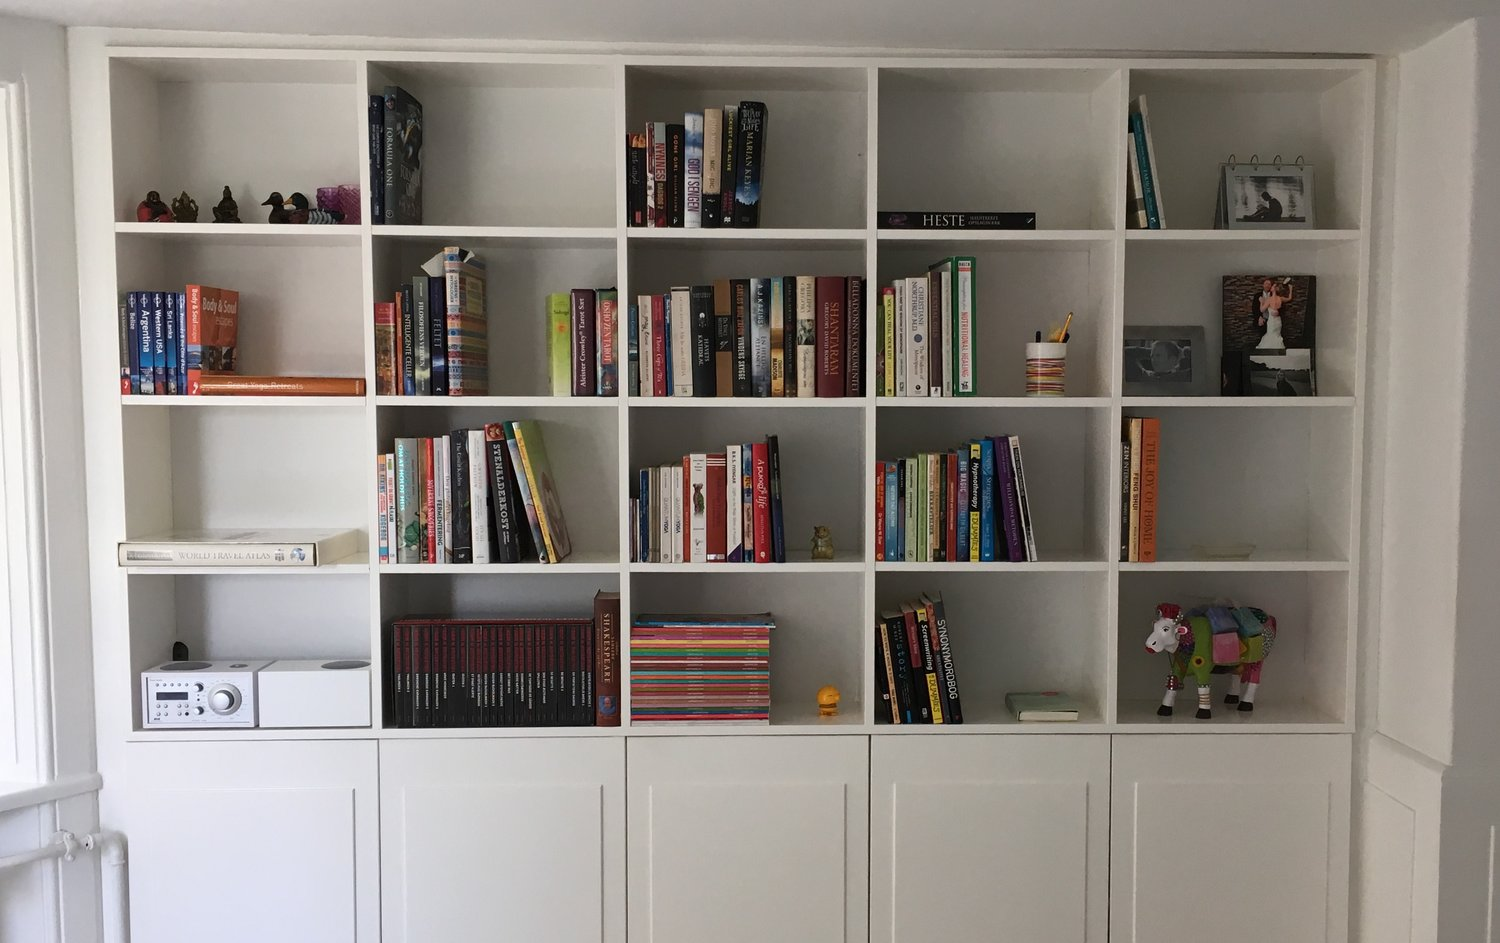 bookcase after - books arranged in happy direction 📈